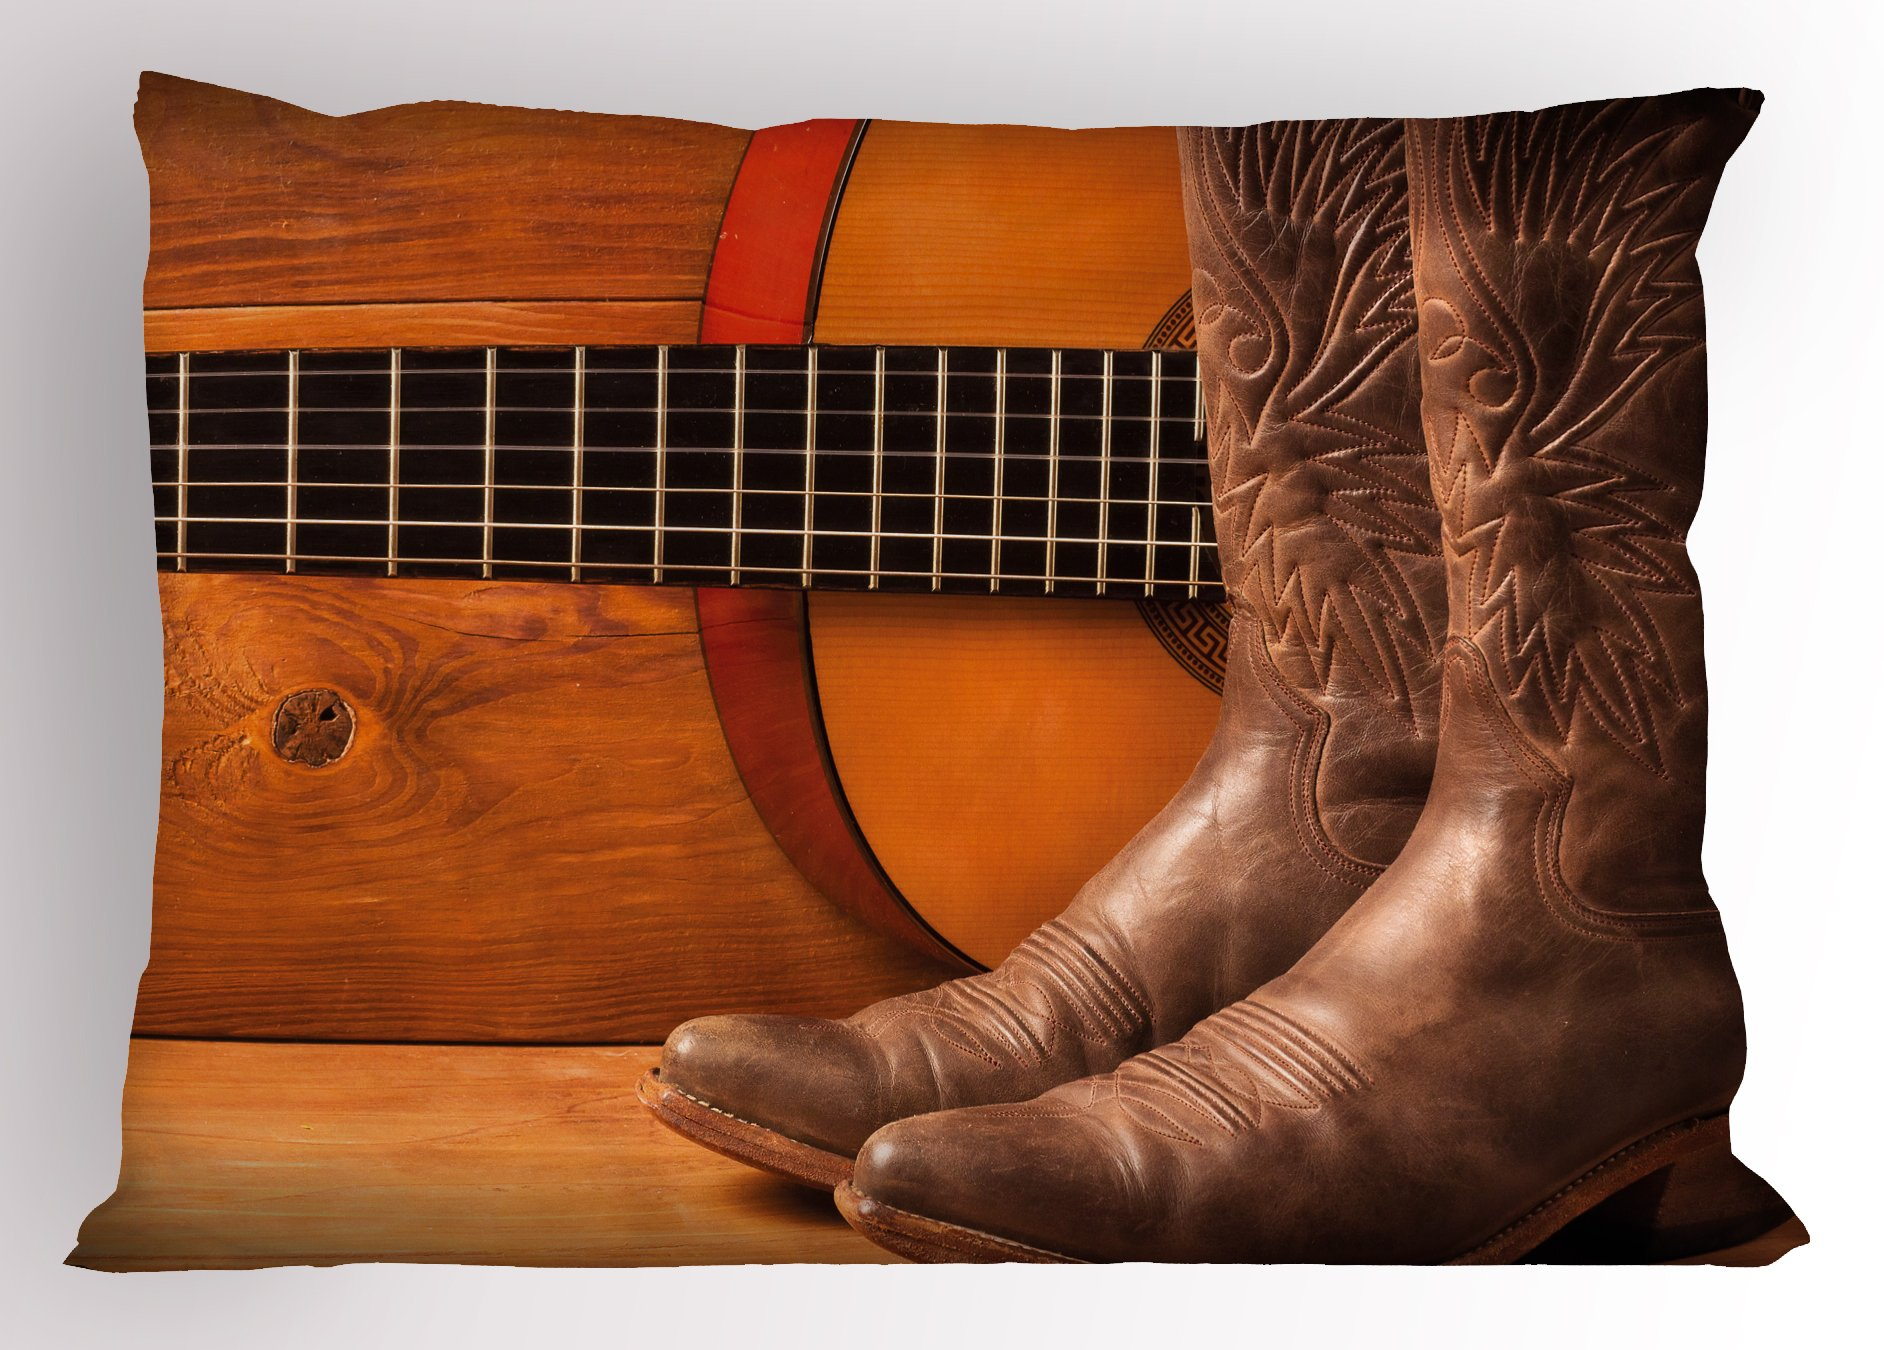 Lunarable Western Pillow Sham, American Country Music Theme Guitar Instrument and Cowboy Shoes on Wood Image, Decorative Standard Queen Size Printed Pillowcase, 30 X 20 Inches, Brown Orange by Lunarable (Image #1)